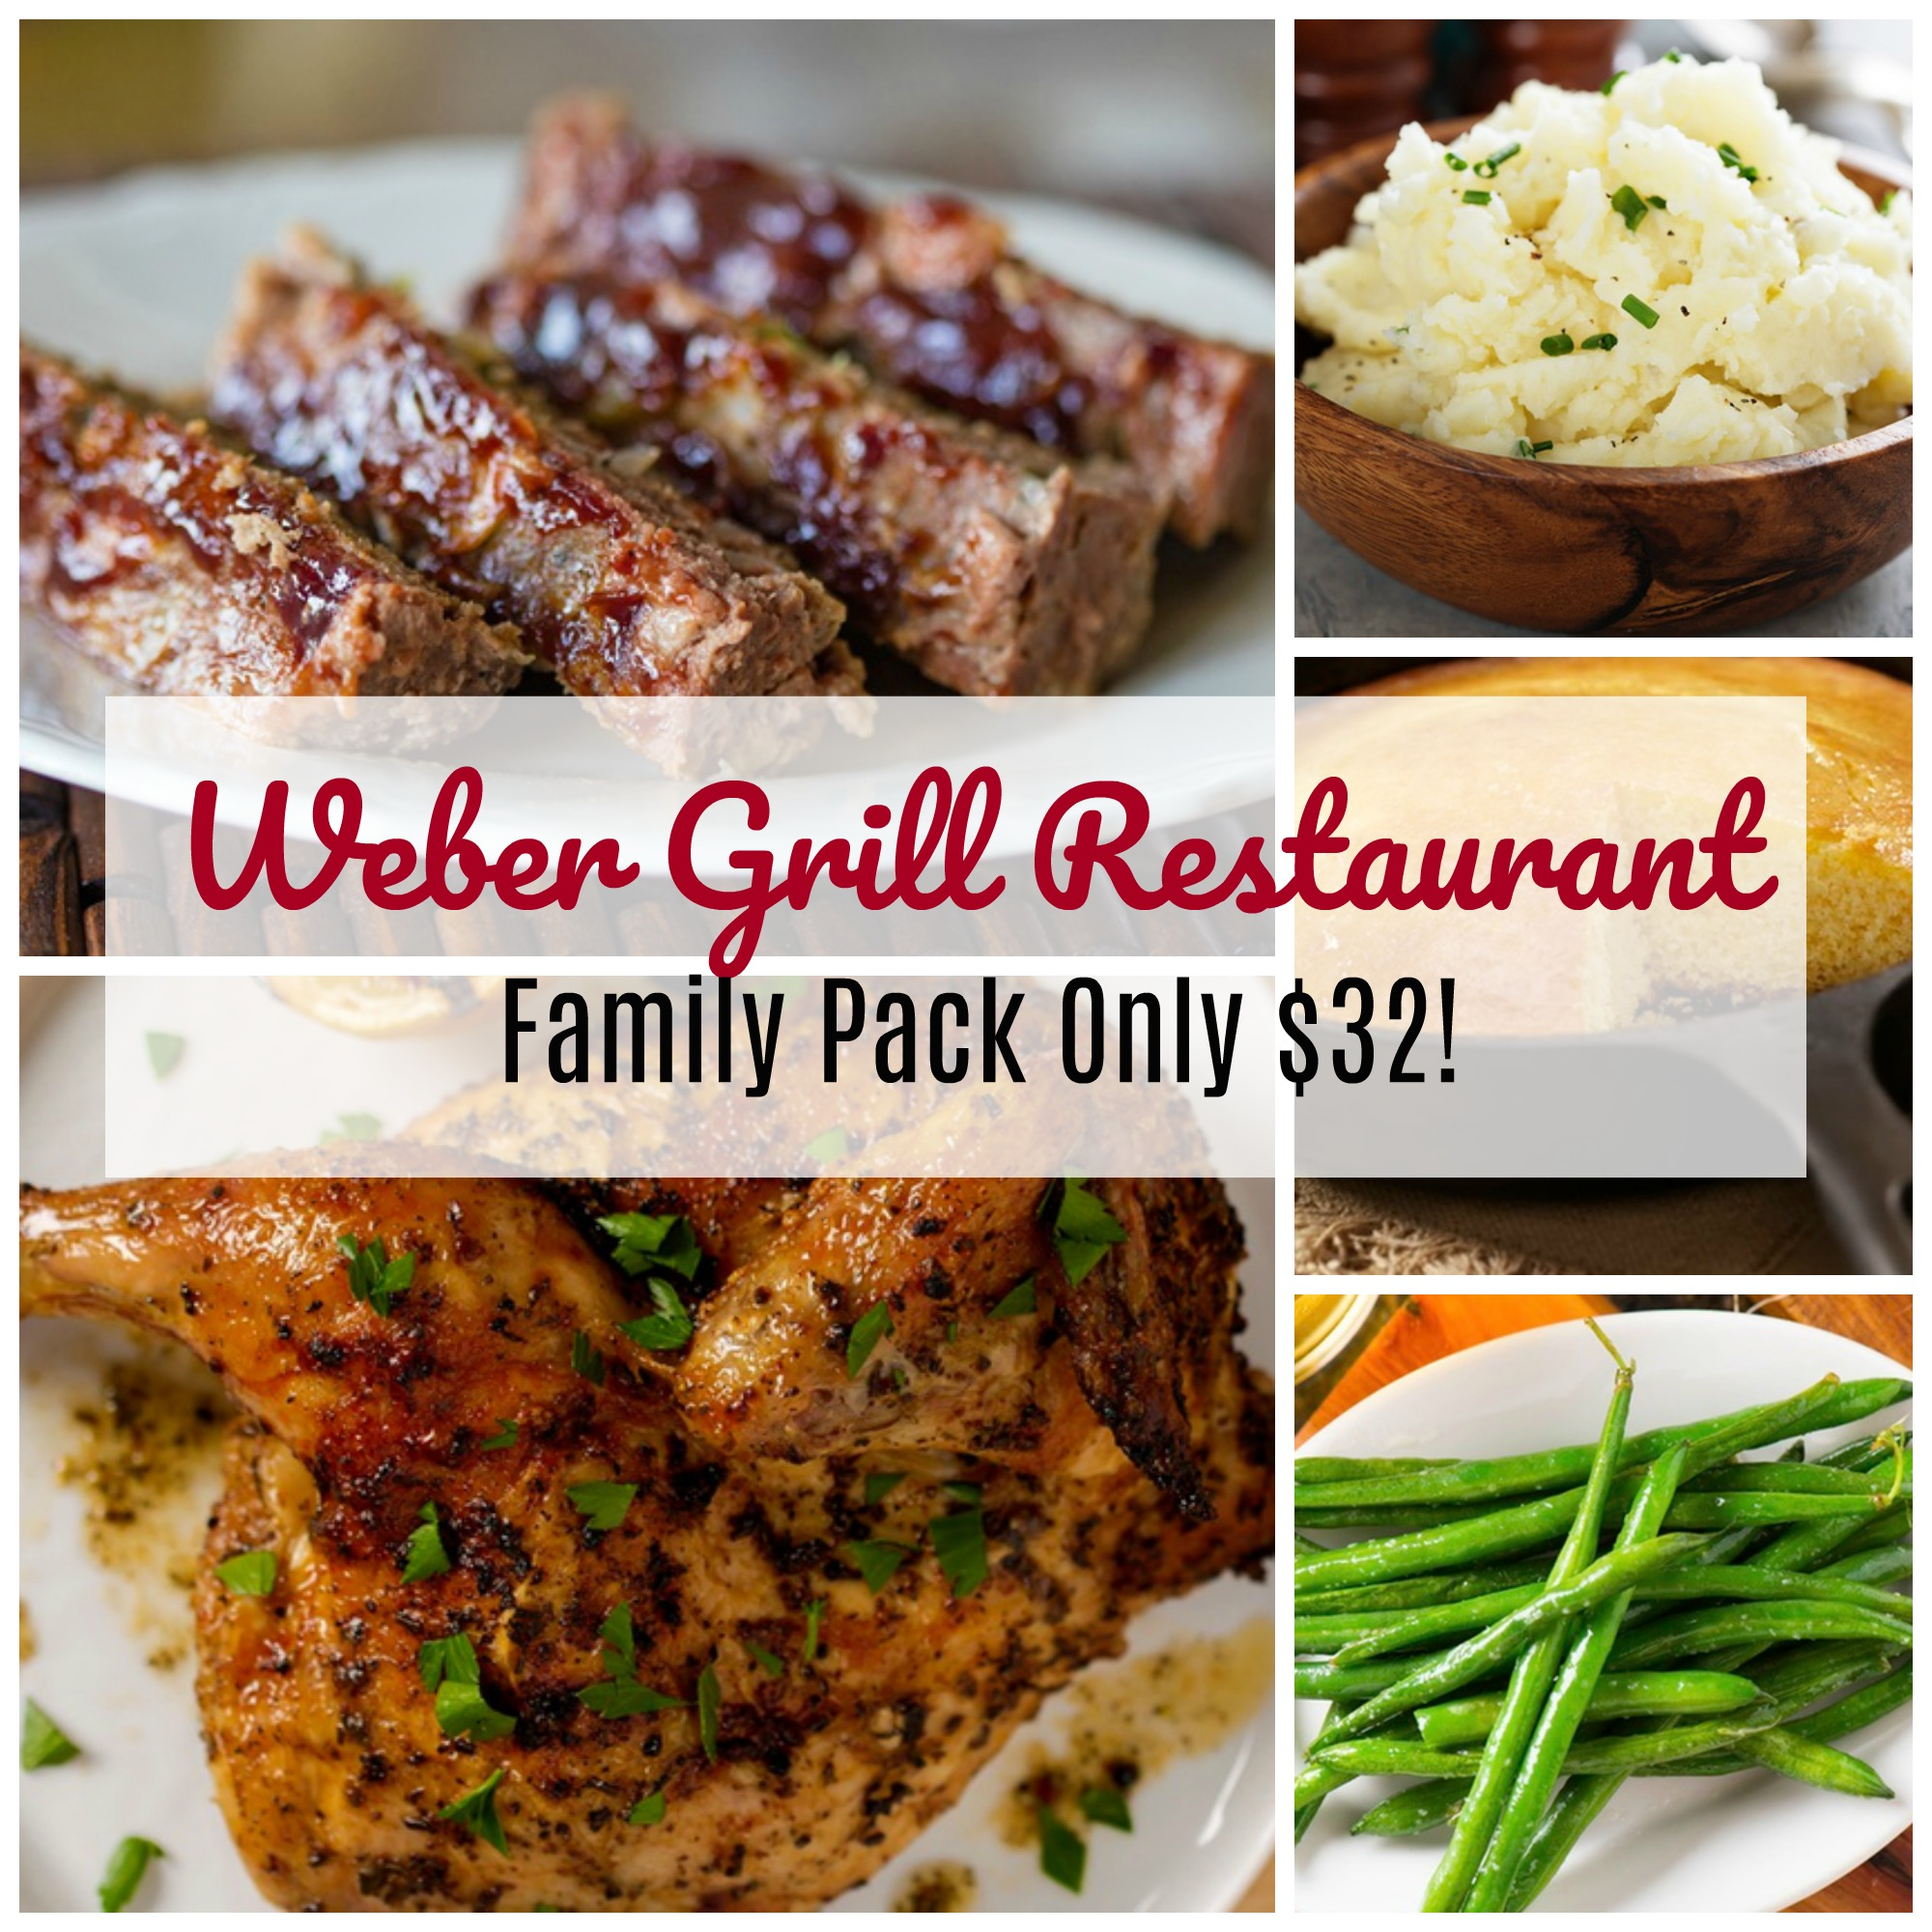 Weber Grill Restaurant Family Pack Only $32! Delivery or Take Out Available!